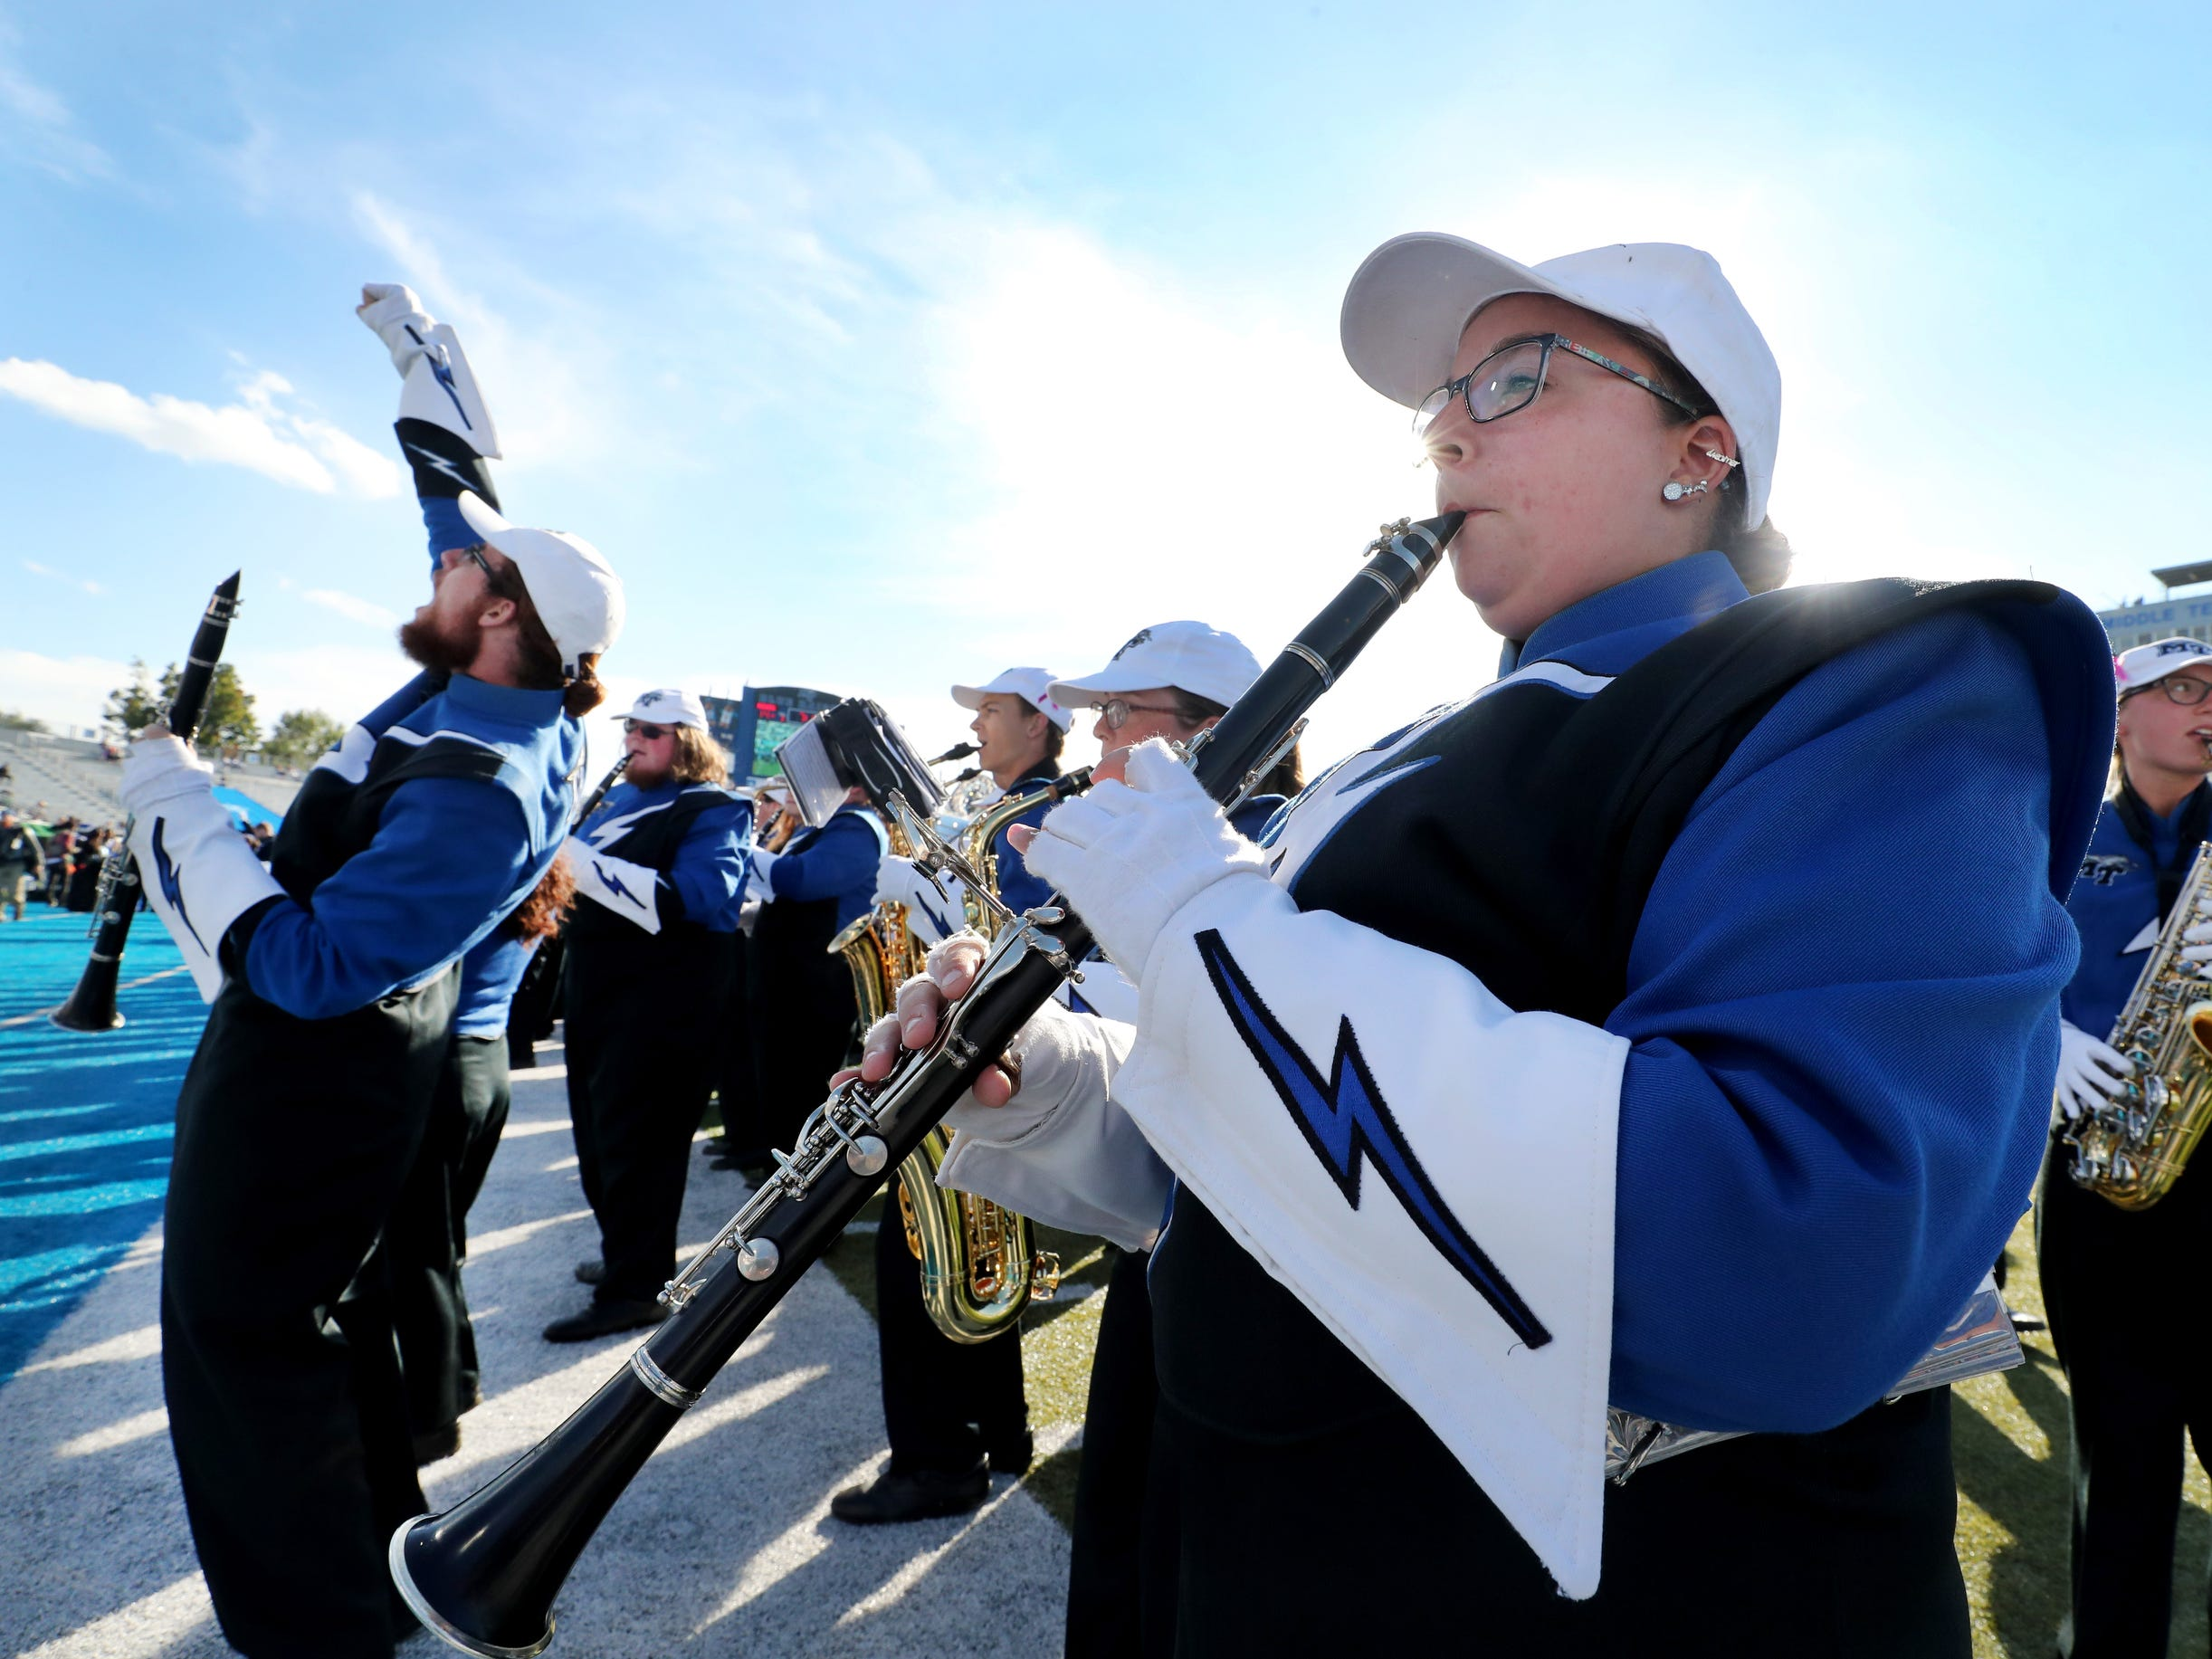 The MTSU Band of Blue plays music for the Homecoming ceremony during halftime of the game the Homecoming game against Charlotte, on Saturday, Oct. 20, 2018.